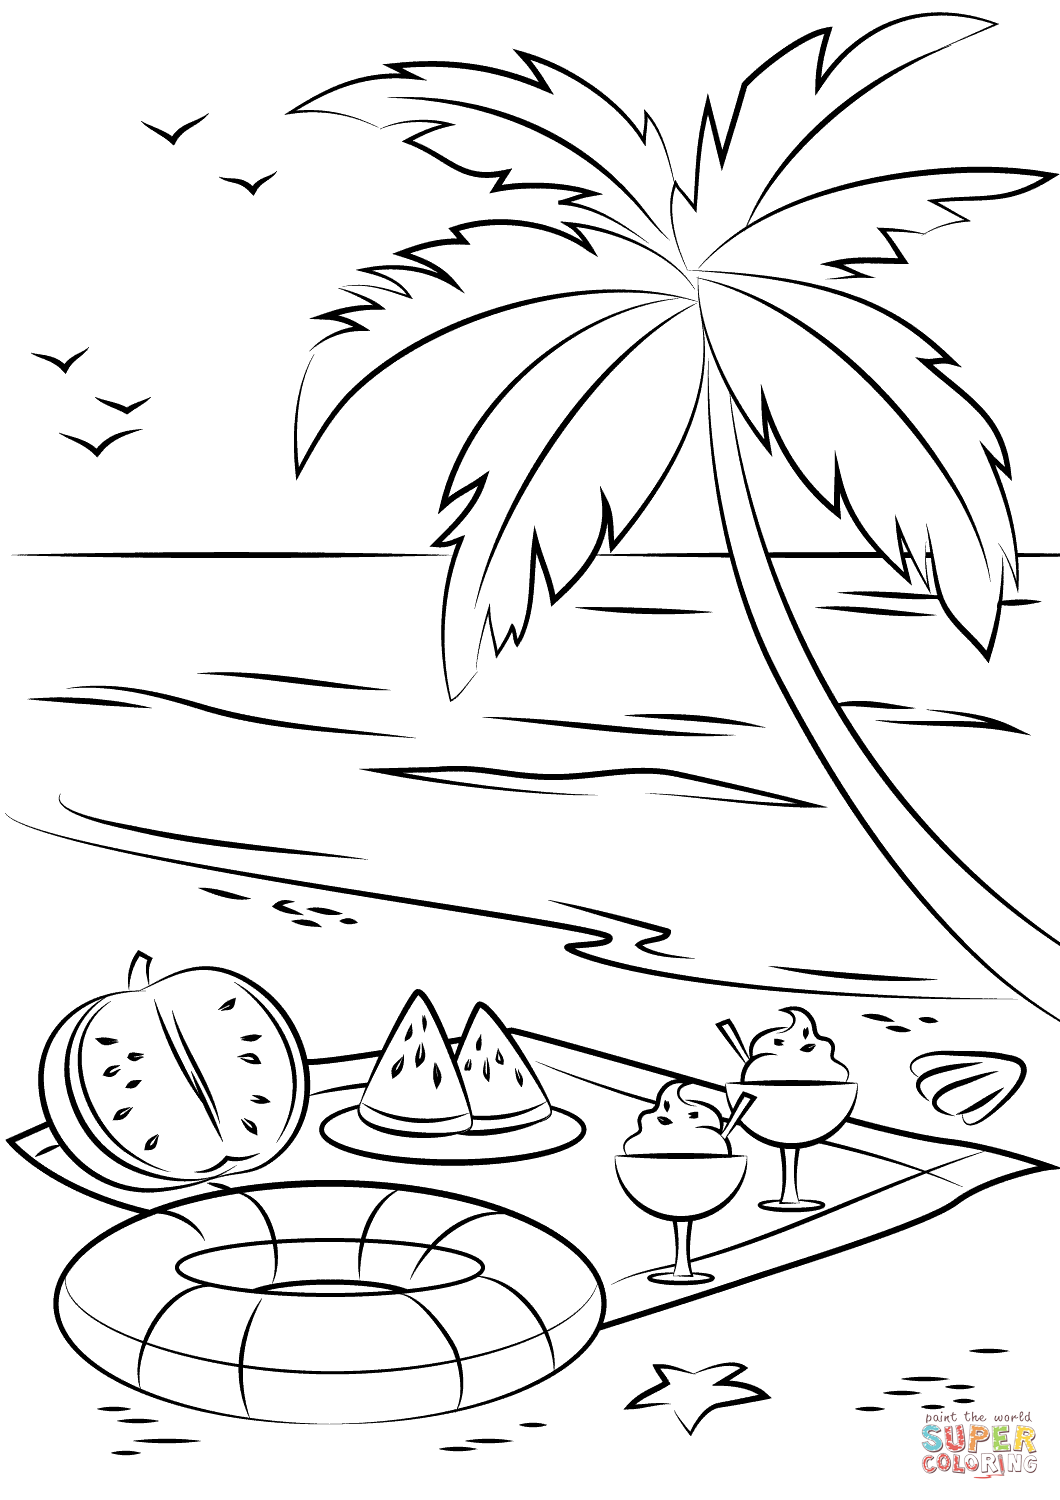 1060x1500 Summer Beach Picnic Coloring Page Free Printable Coloring Pages